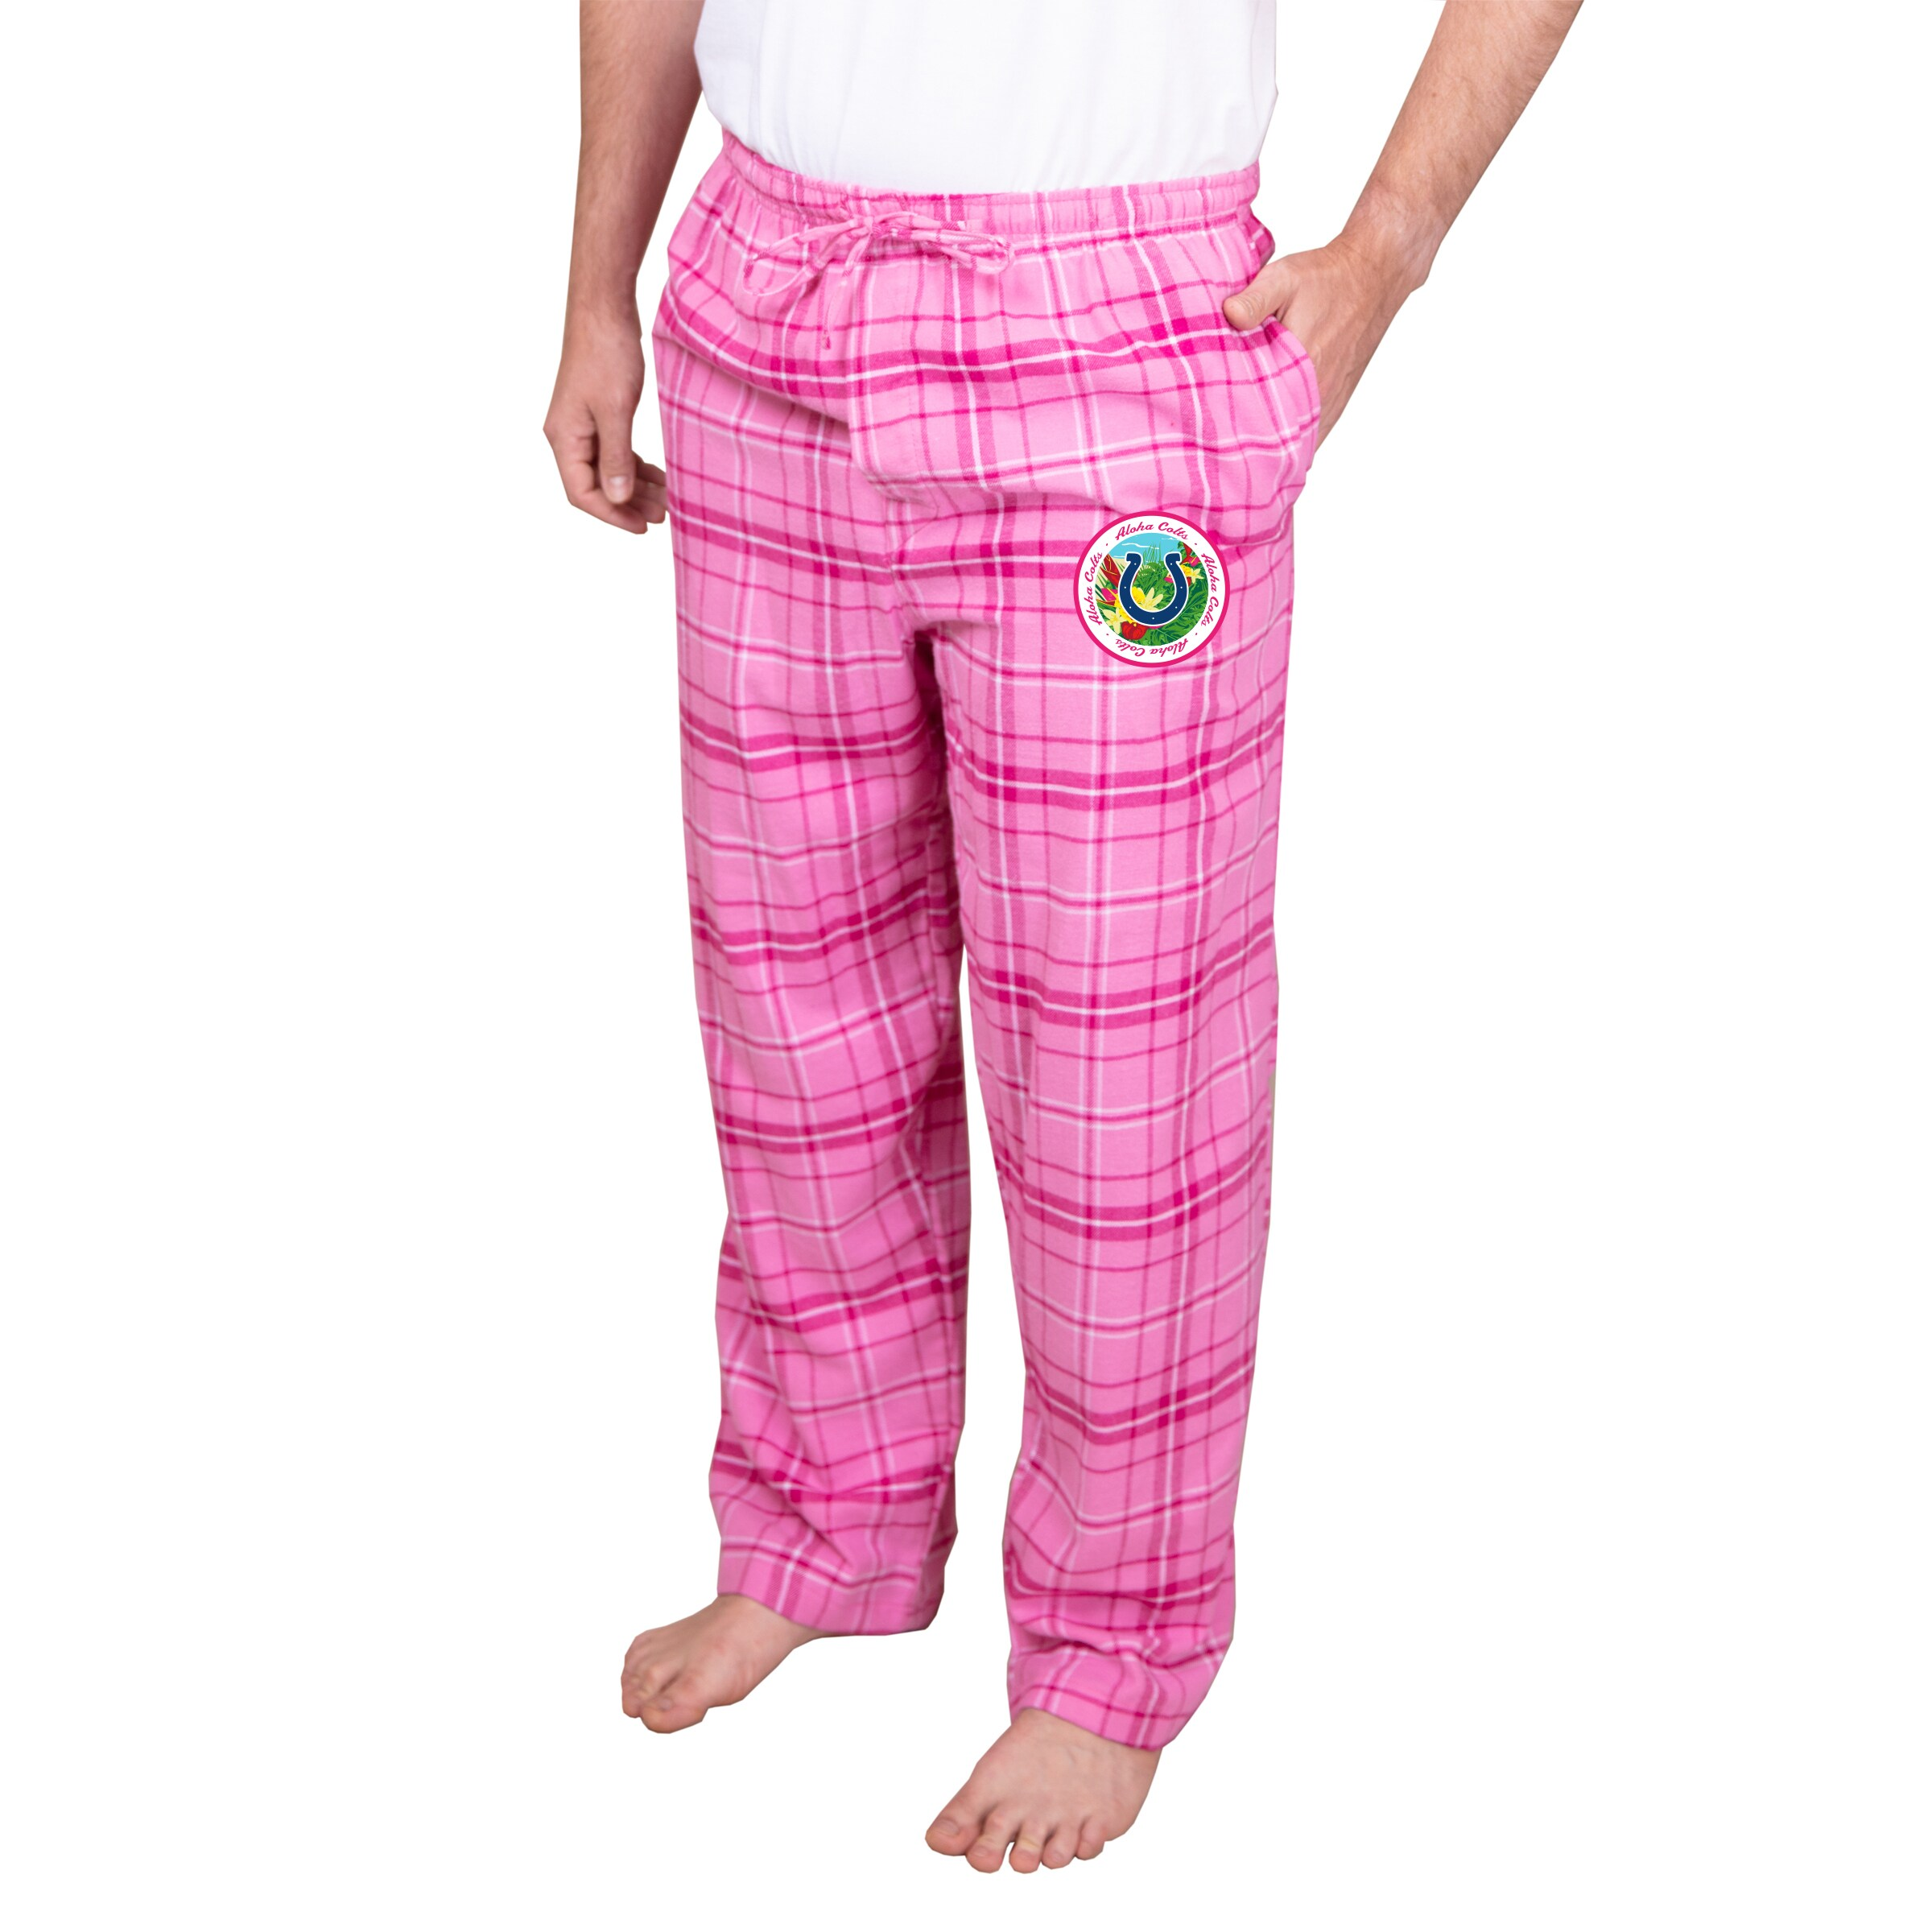 Indianapolis Colts Concepts Sport Ultimate Pants - Pink